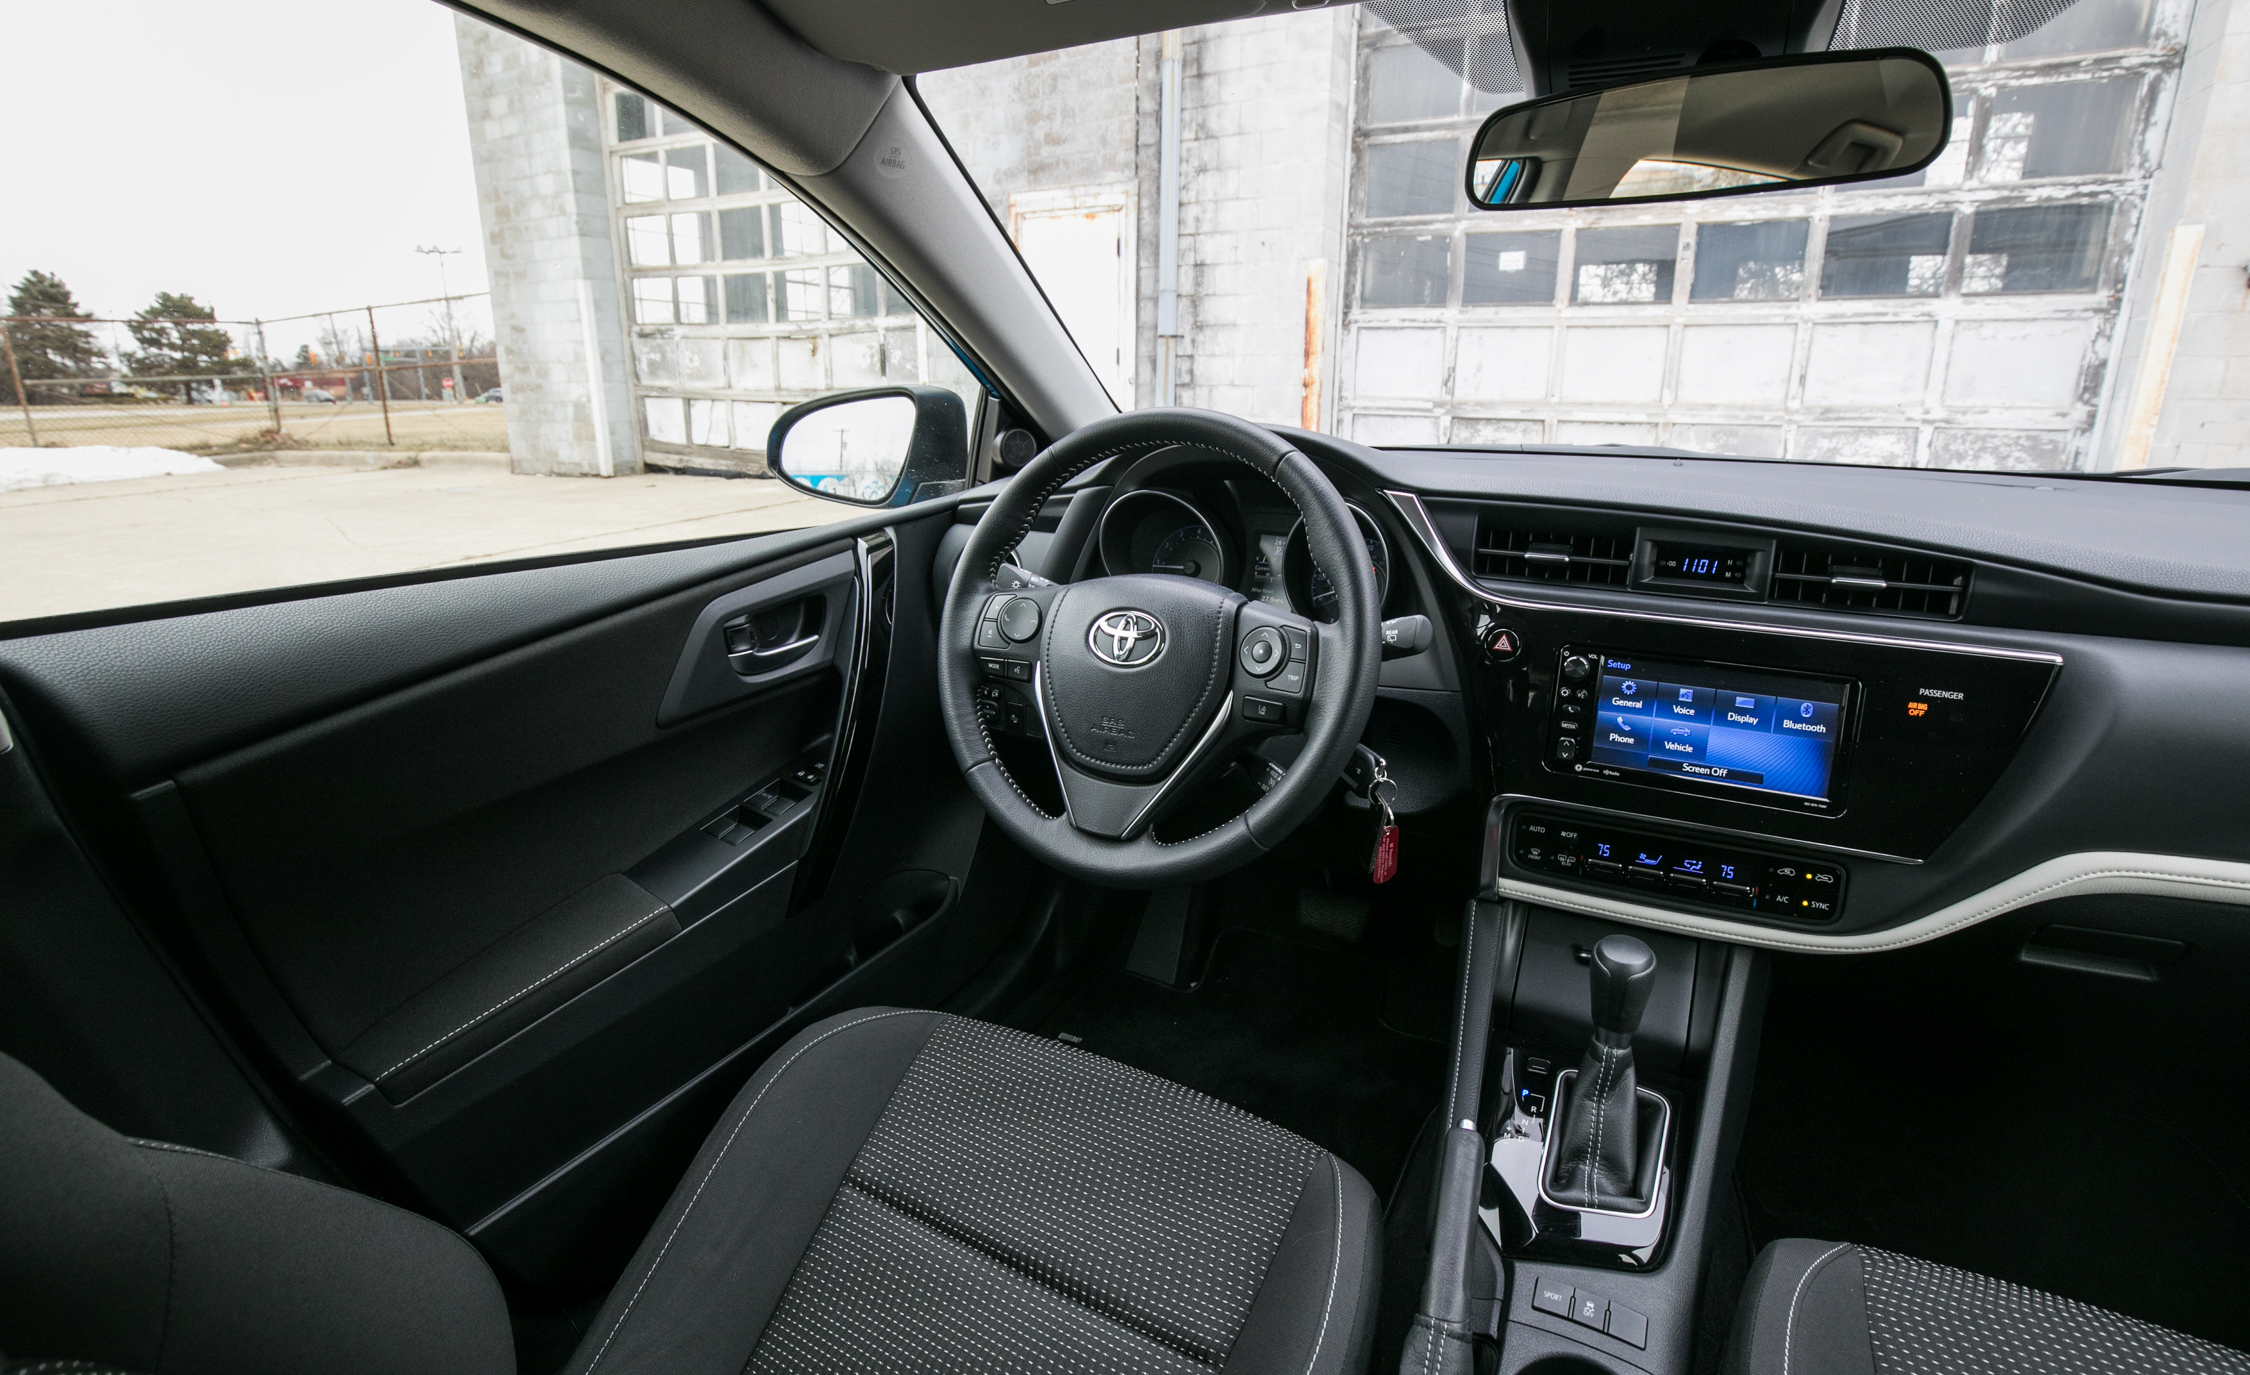 2017 Toyota Corolla IM Hatchback Interior Cockpit (Photo 22 of 52)